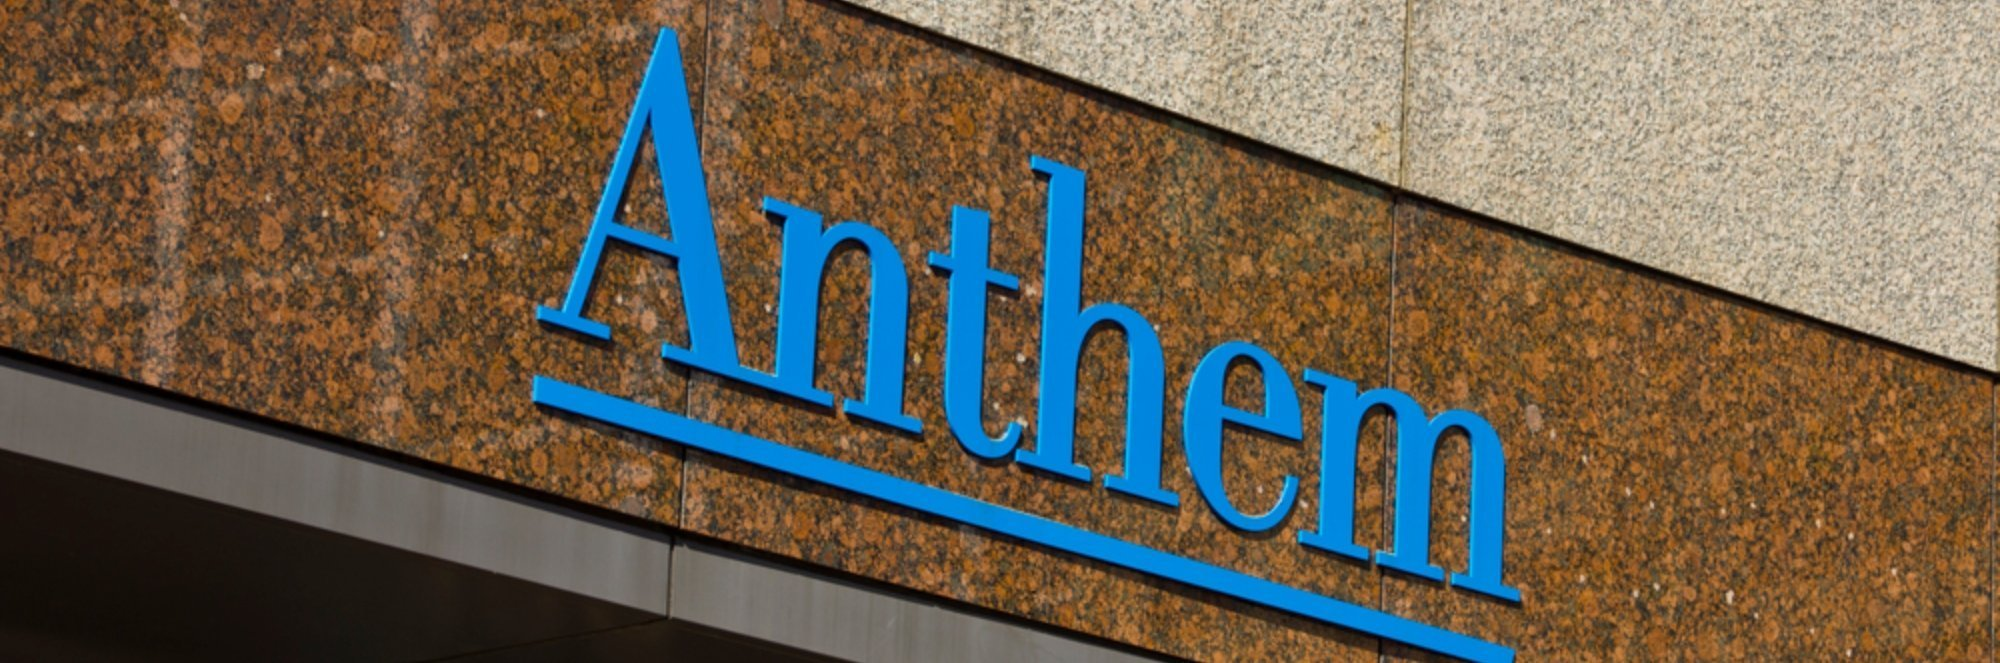 Does Anthem Blue Cross Blue Shield Cover Rehab? | Changing ...